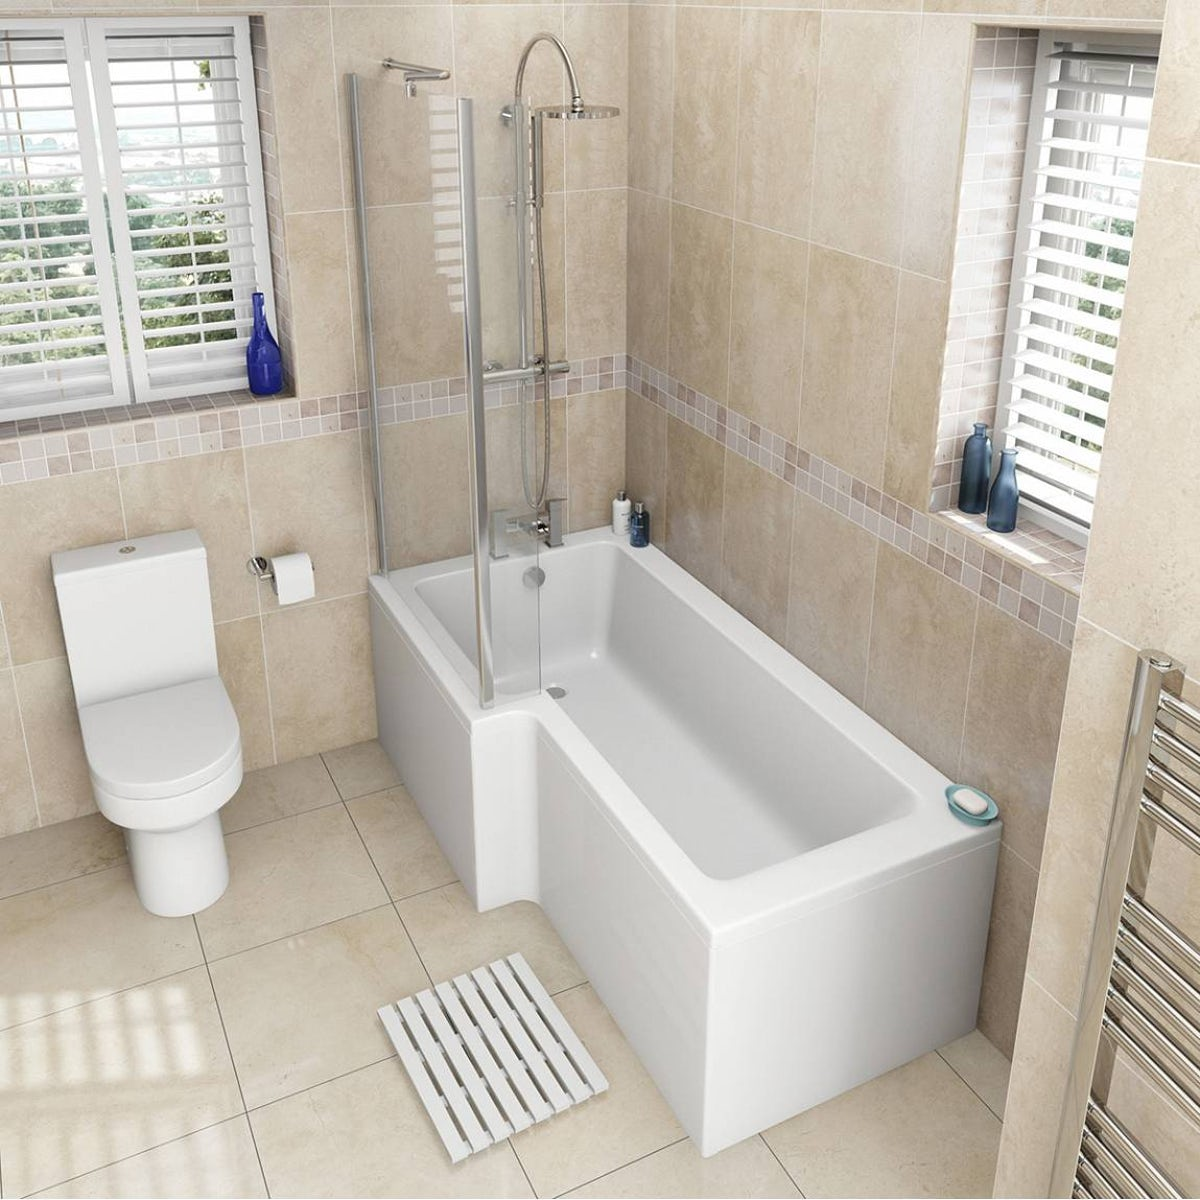 orchard oakley bathroom suite with left handed l shaped shower oakley bathroom suite with boston 1700 x 850 shower bath lh